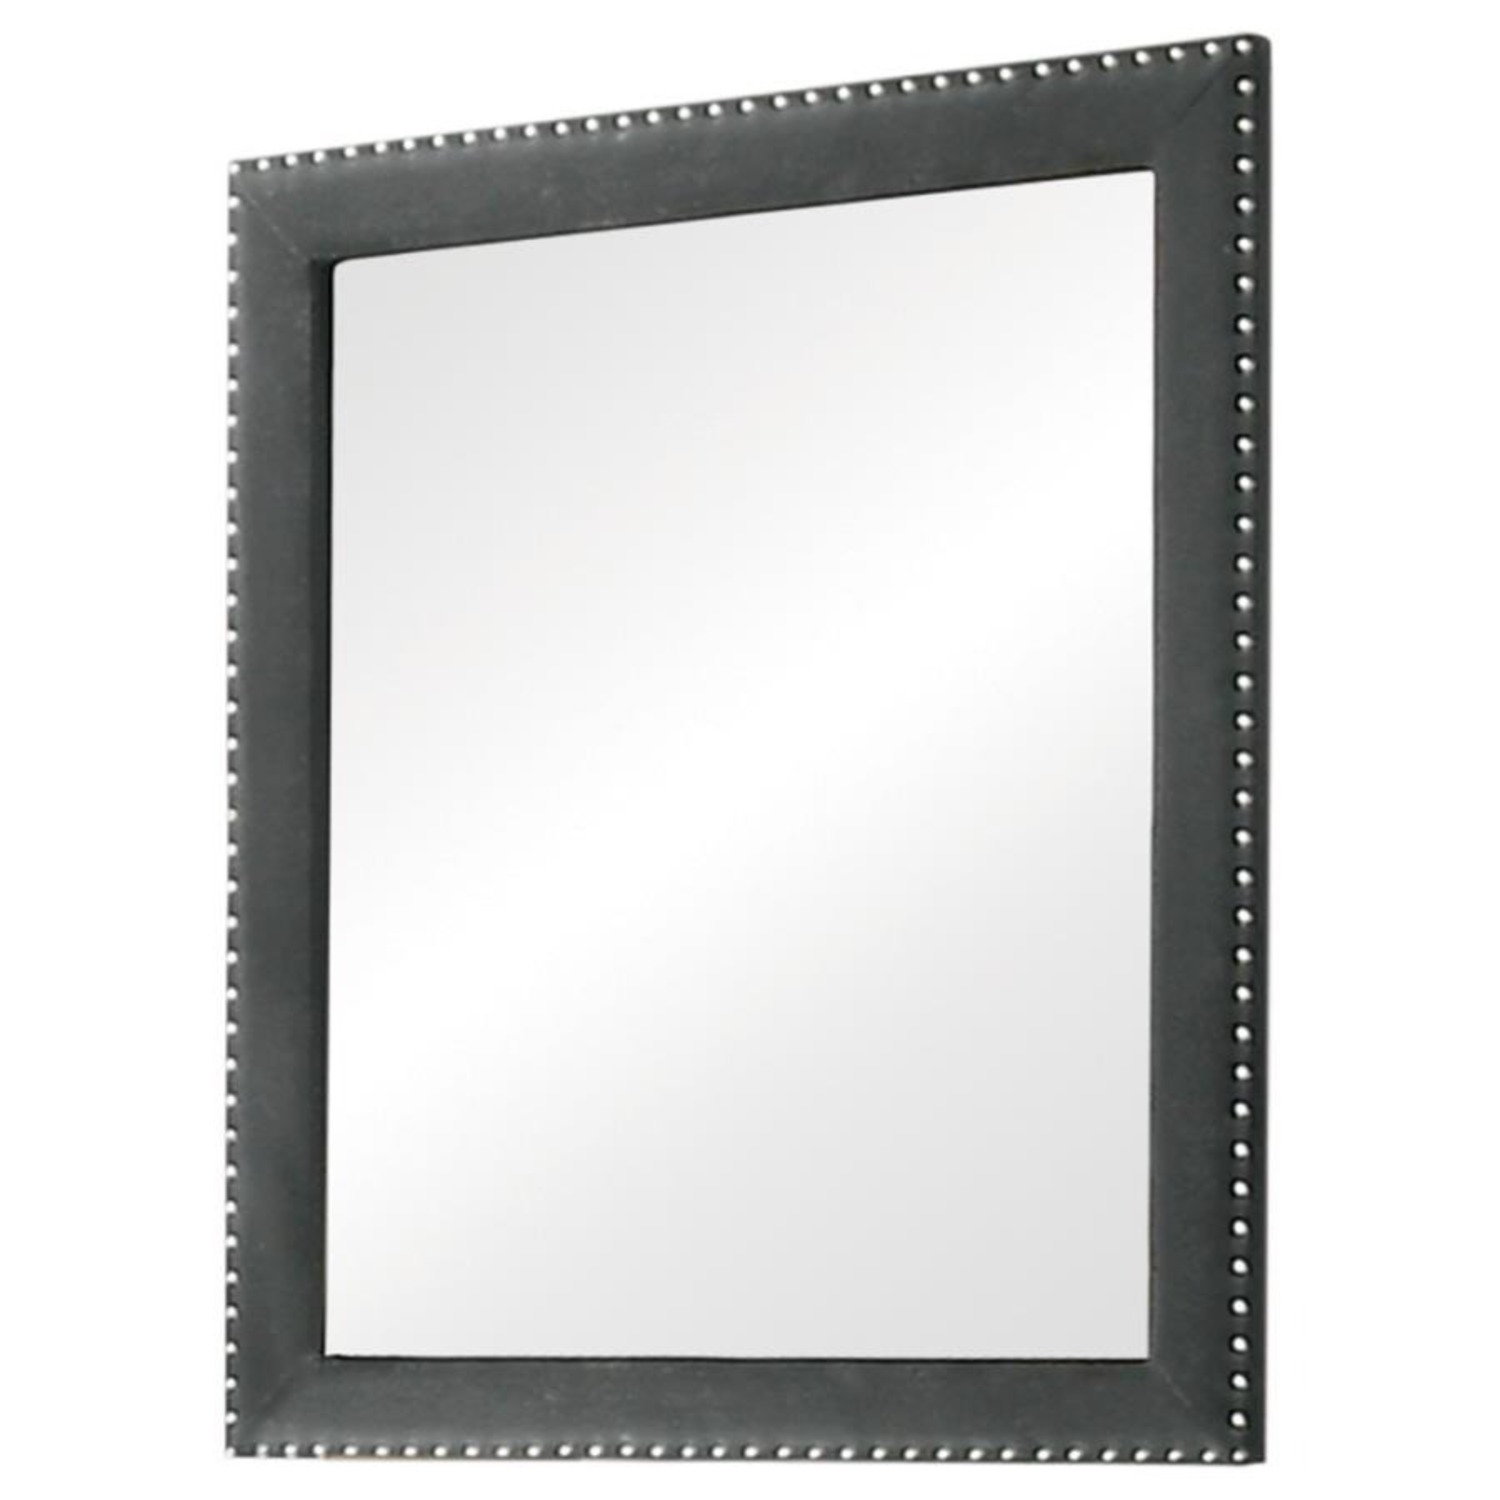 Mirror In Grey Frame Finish W/ Tufted Buttons - image-0